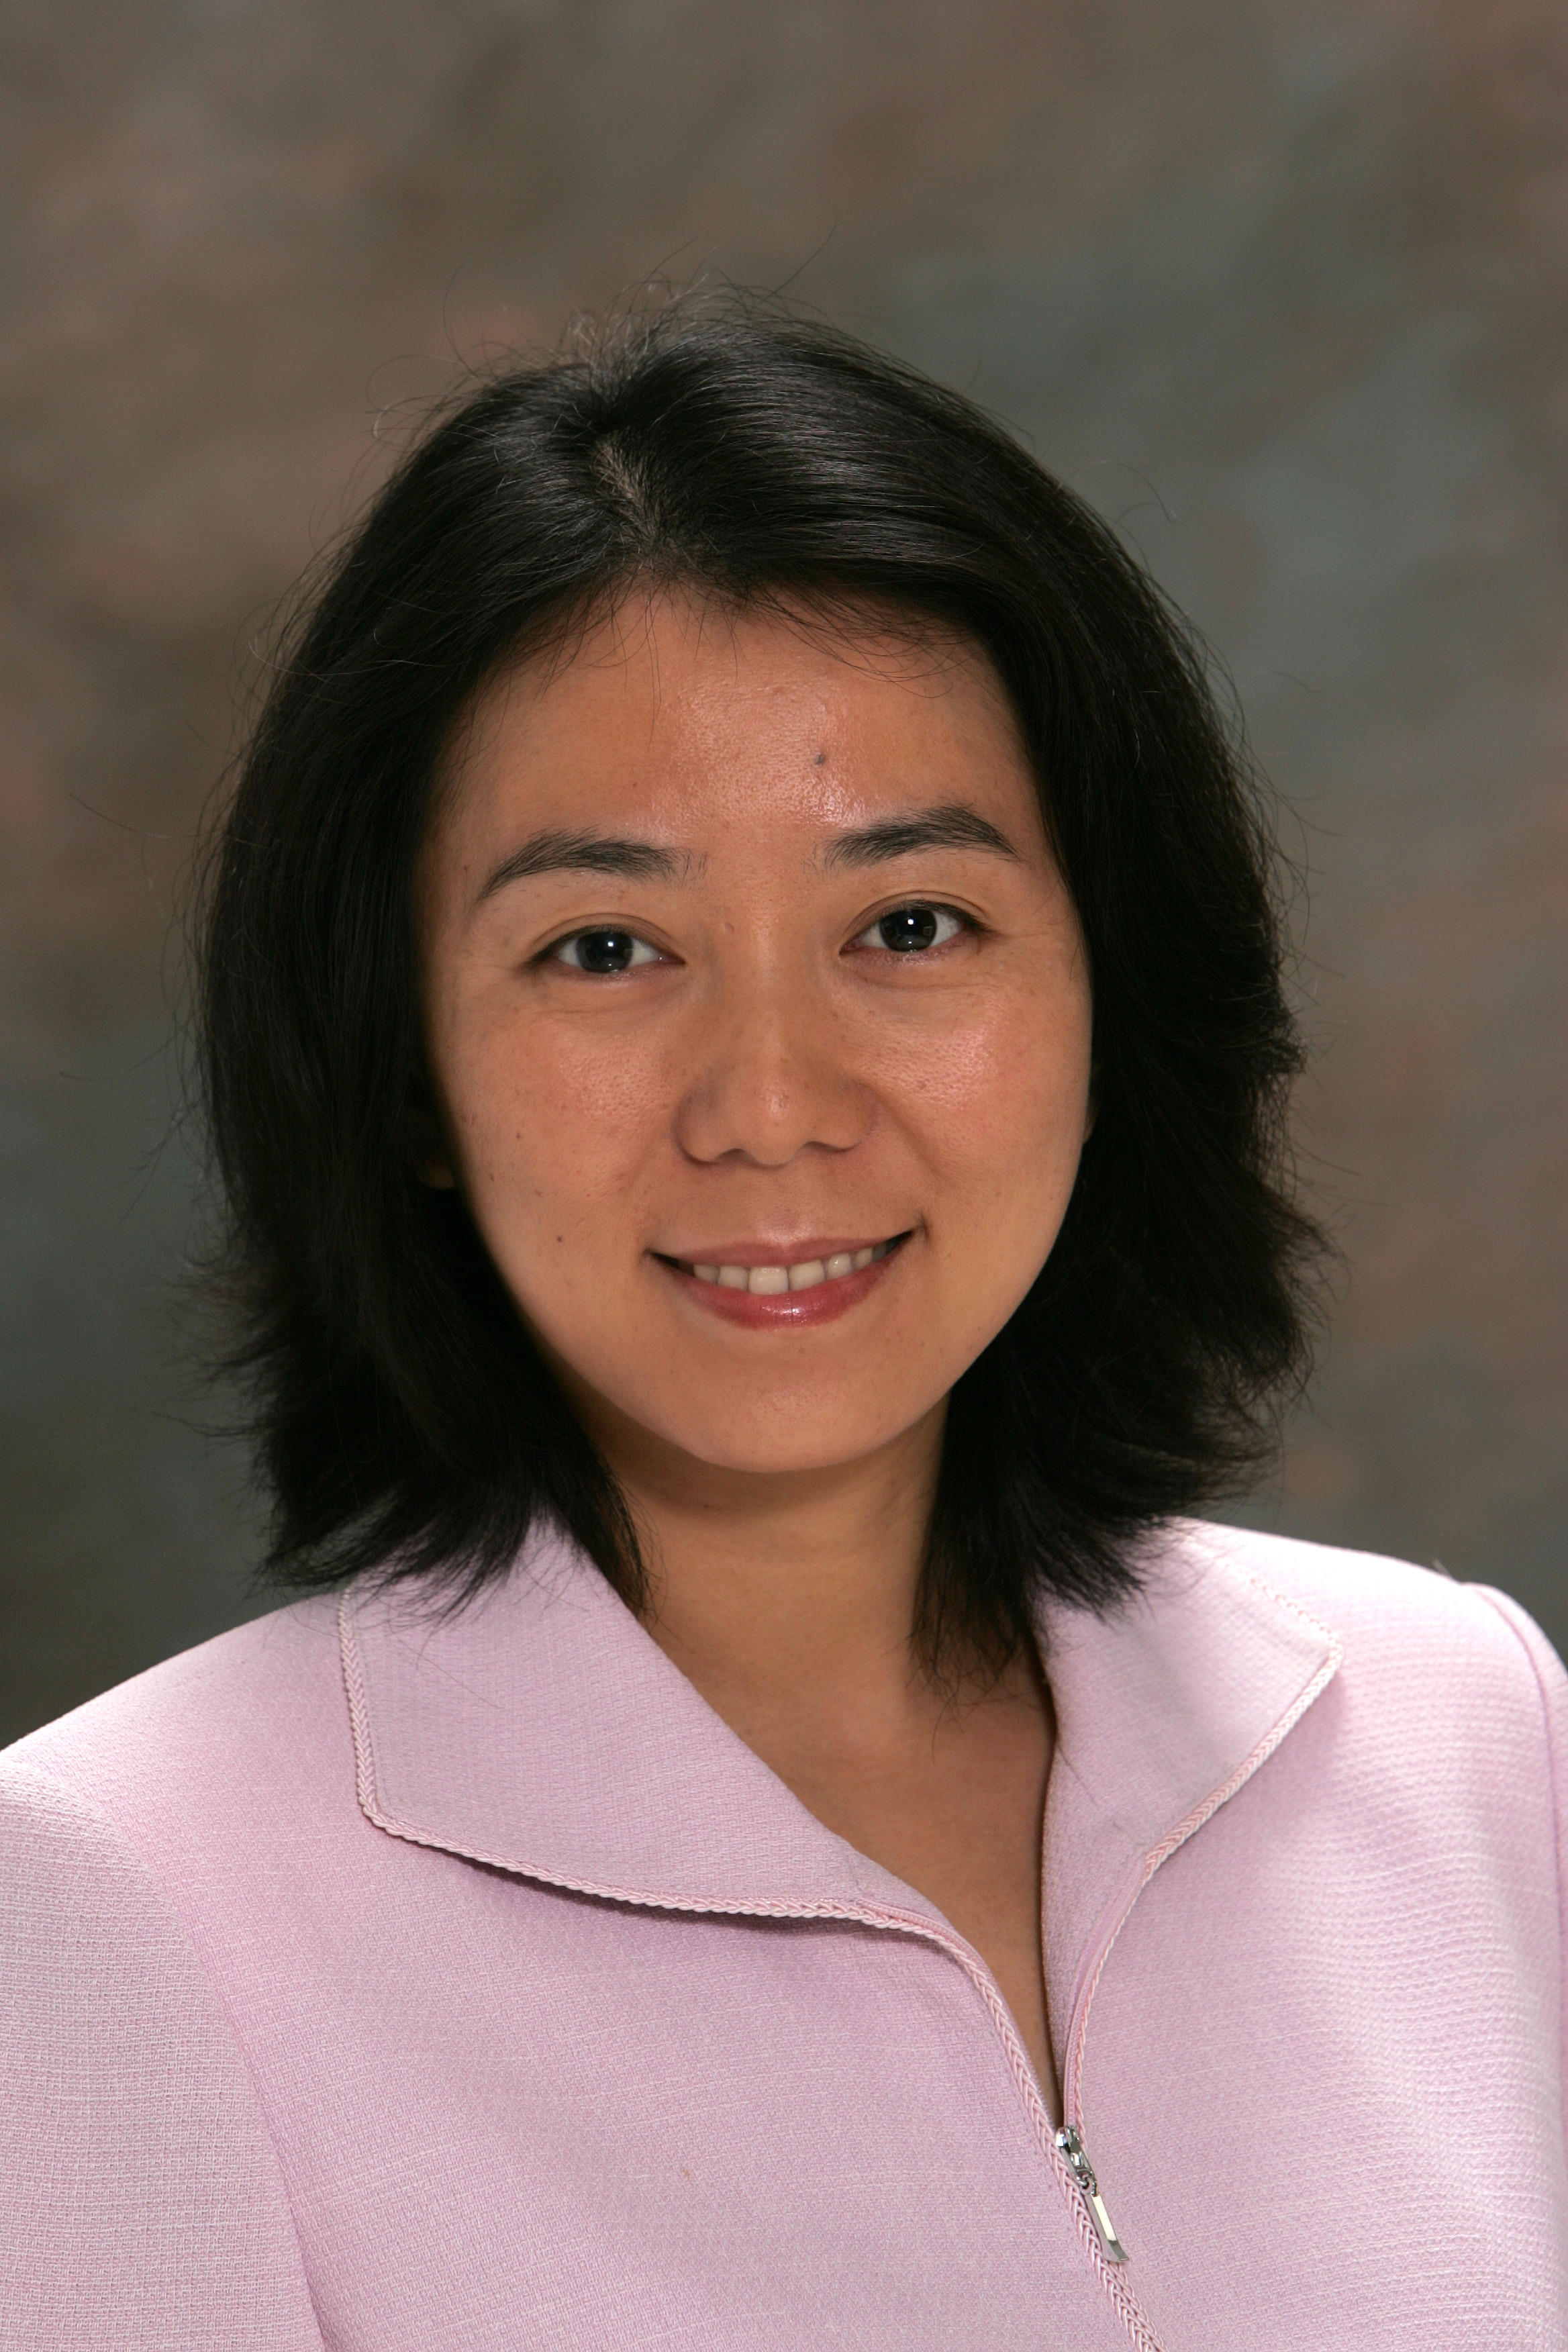 Photo of Yifang Zhu, Ph.D.